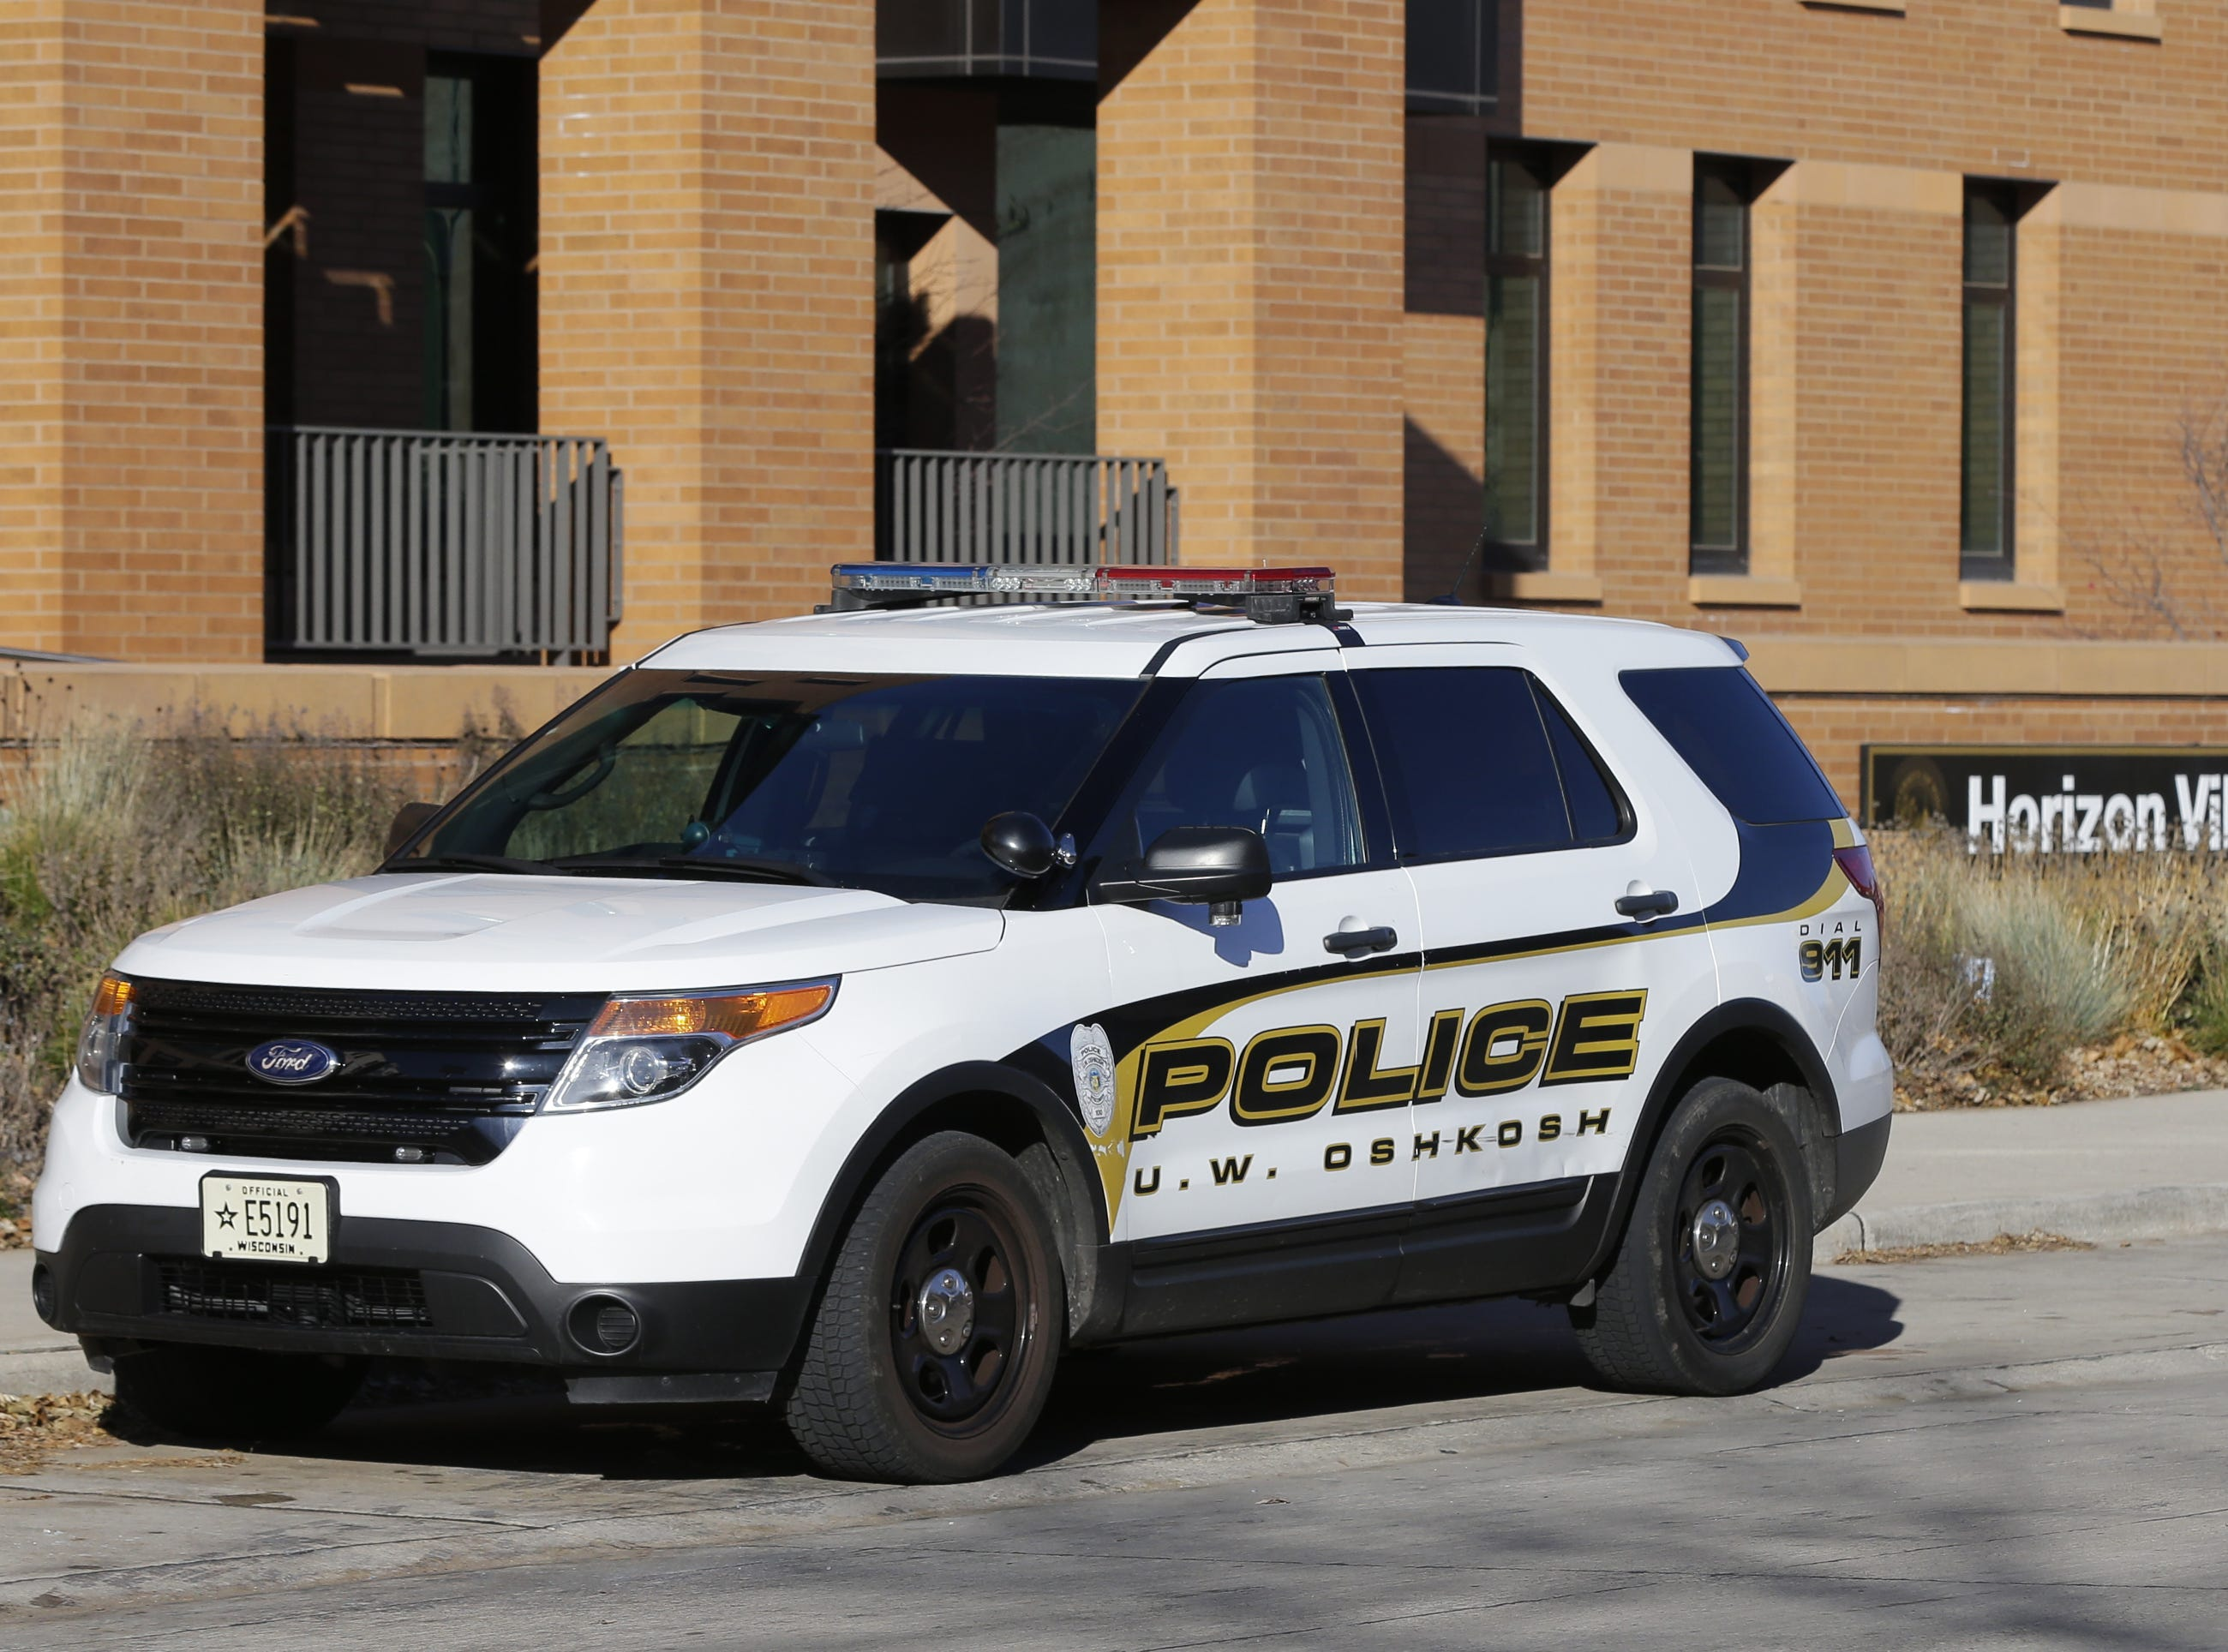 A robbery occurred on the UW-Oshkosh campus at Reeve Memorial Union at 8:40 a.m Wednesday, November 14, 2018.  There were two males suspects involved in the robbery. The suspects targeted an ATM security guard exchanging money. Suspects are not in custody. The suspects fled in vehicle traveling away from campus in an older style, rounded front, tan 4-door car Joe Sienkiewicz/USA Today NETWORK-Wisconsin